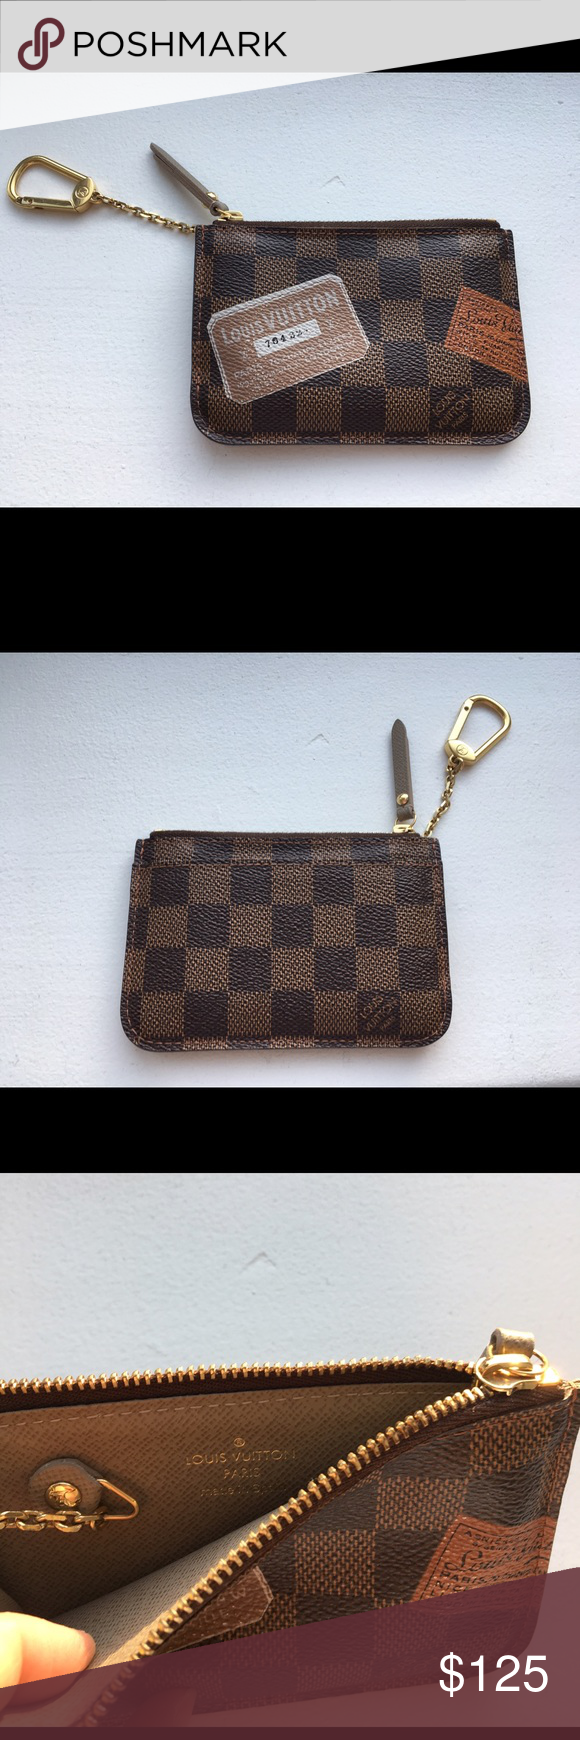 d4513100992 Louis Vuitton key pouch - perfect condition ❤ Key pouch change or card  holder